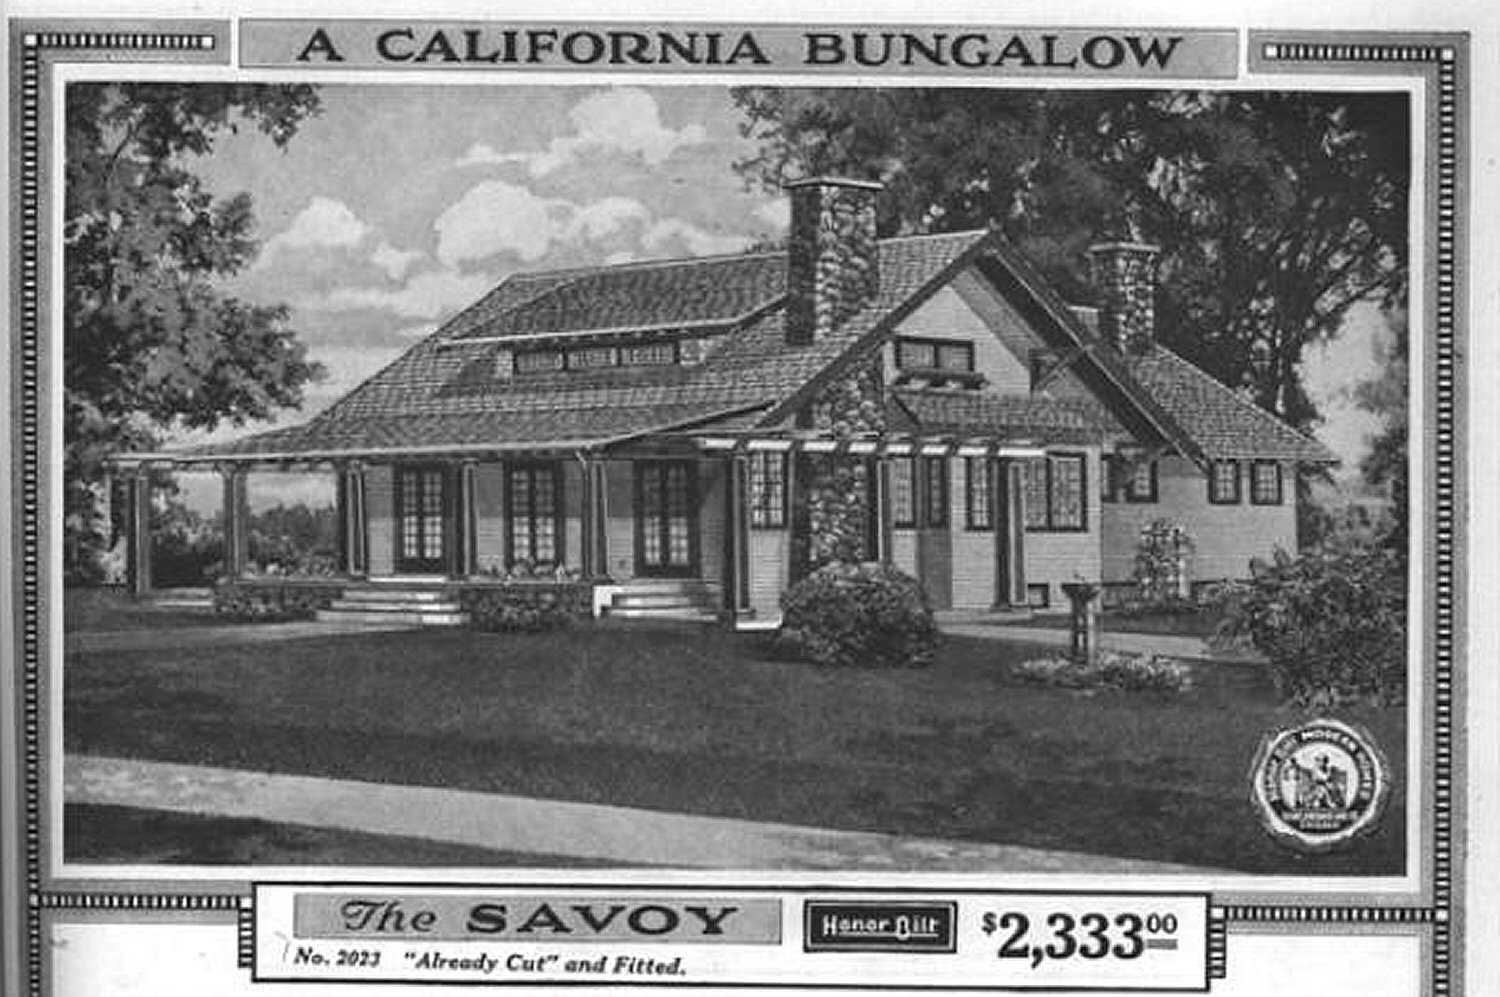 black and white illustration of a California bungalow called the Savoy costing $2,333